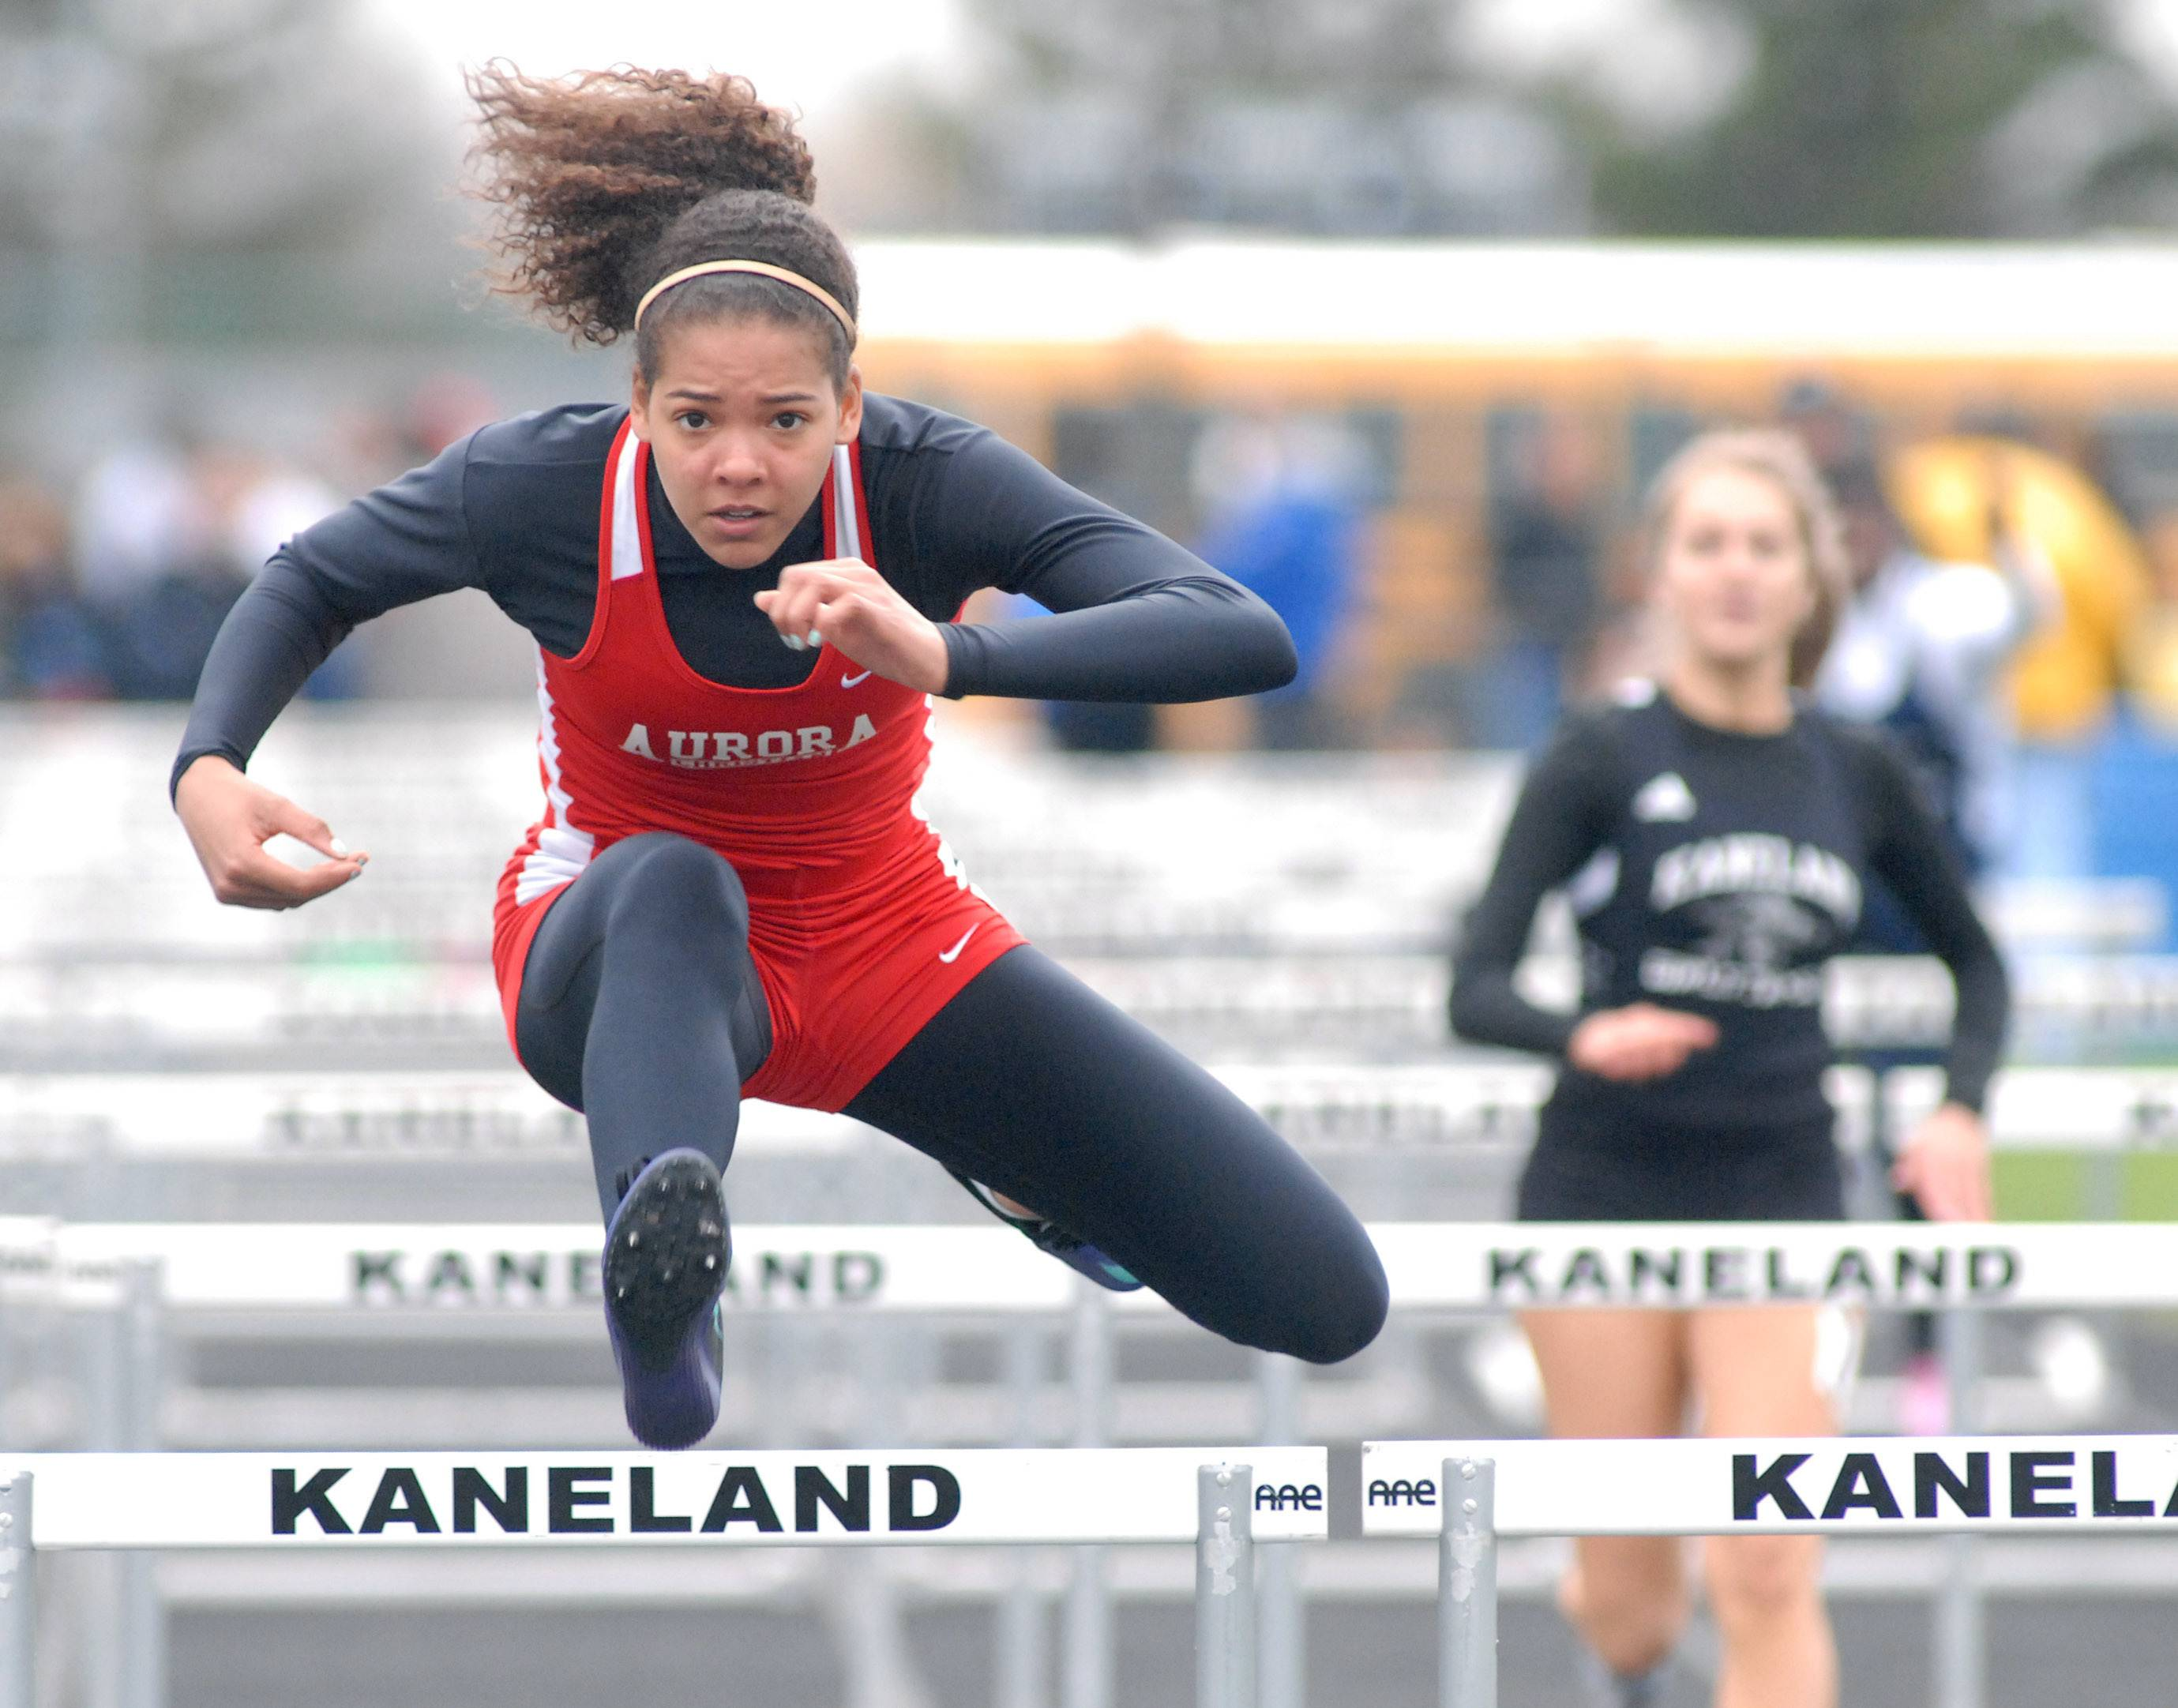 Aurora Christian's Peyton Wade in the prelims of the 100-yard hurdles at Kaneland High School in Maple Park on Friday, May 2.